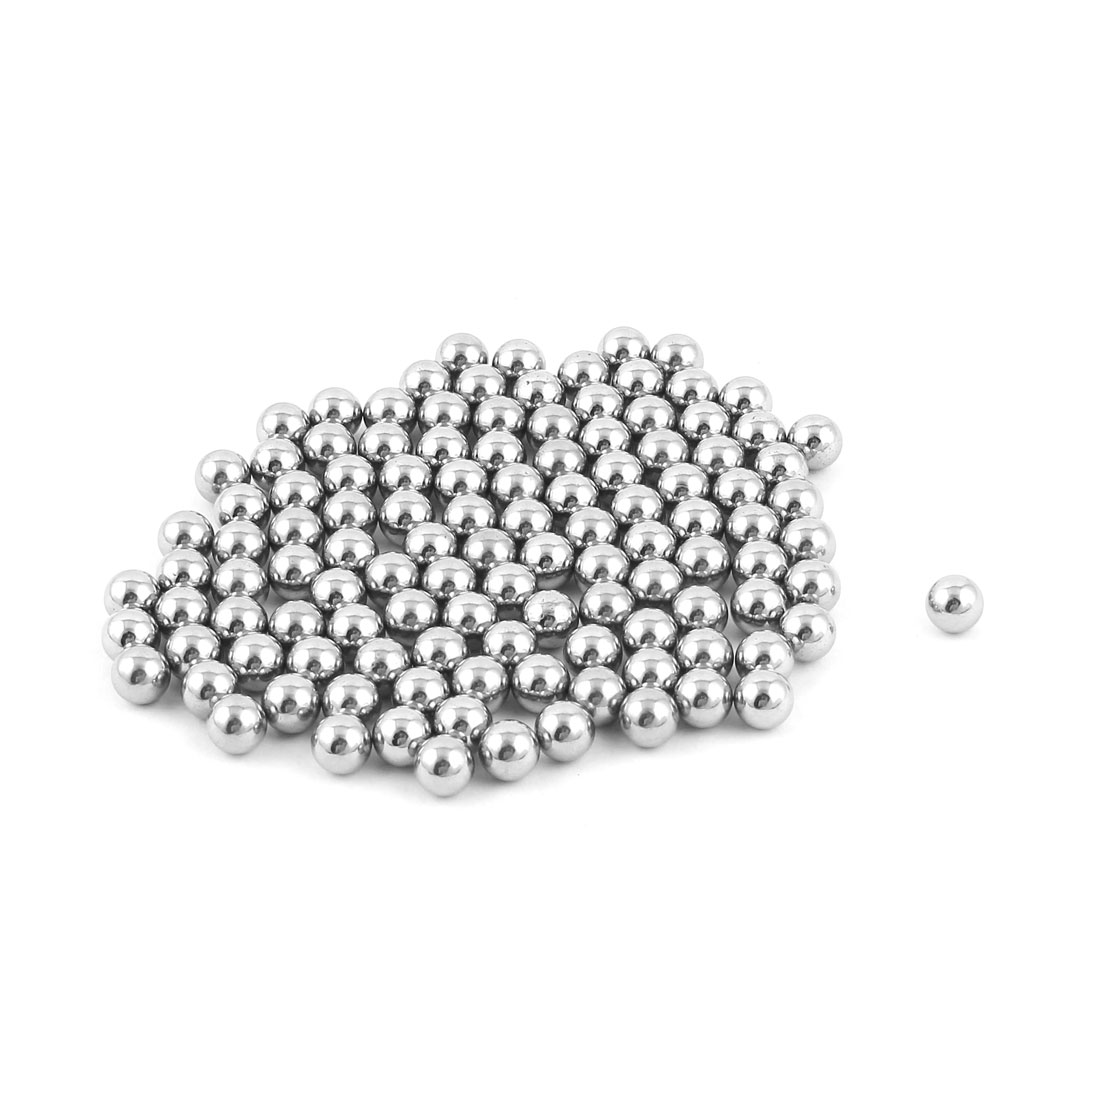 Bike Bicycle Wheel Bearing Steel Balls 7.5mm Diameter 100 Pcs